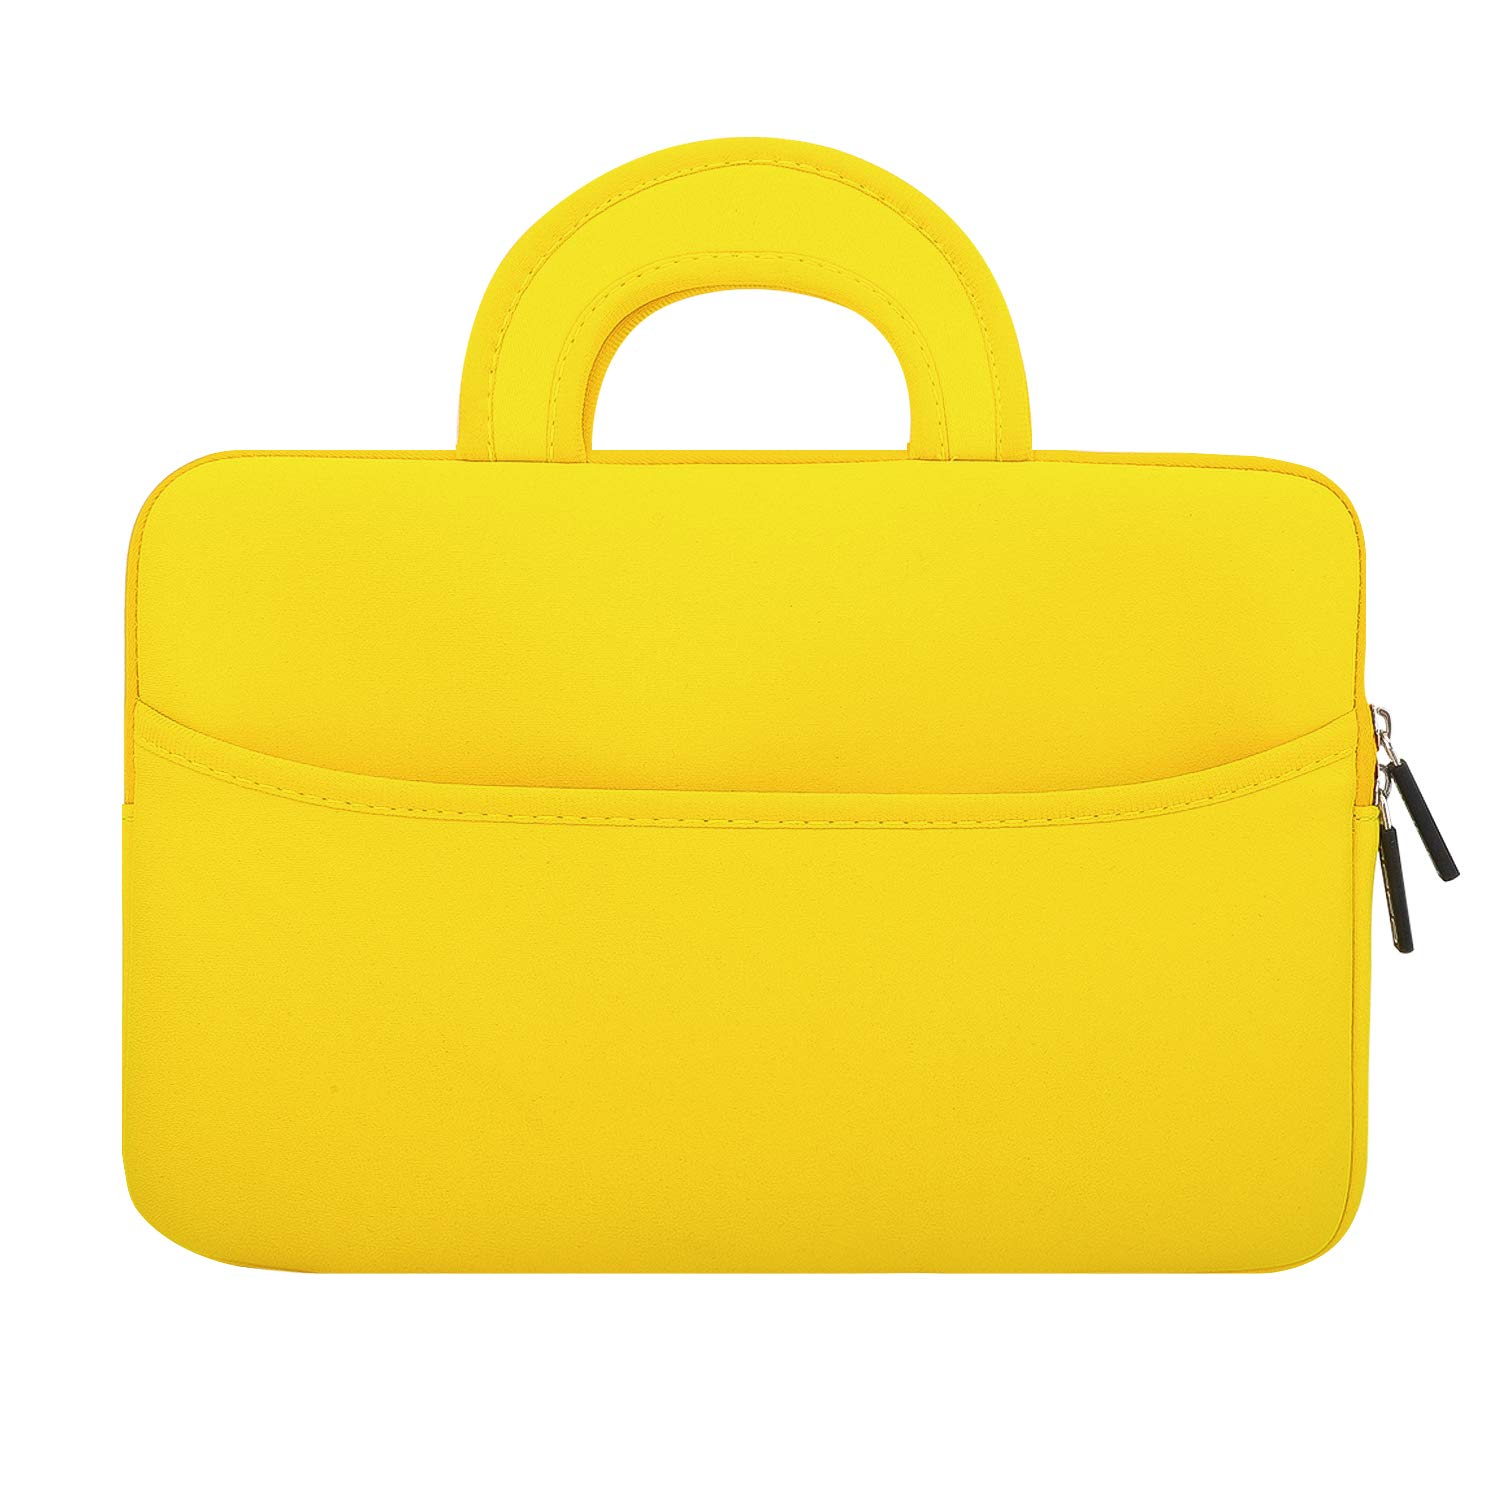 """MoKo 8-10.1 Inch Kids Tablet Sleeve, Neoprene Zipper Carrying Case Bag Fits iPad Pro 11"""", iPad 10.2, Dragon Touch 8/10 inch Kids Tablet with Accessory Pocket - Yellow"""